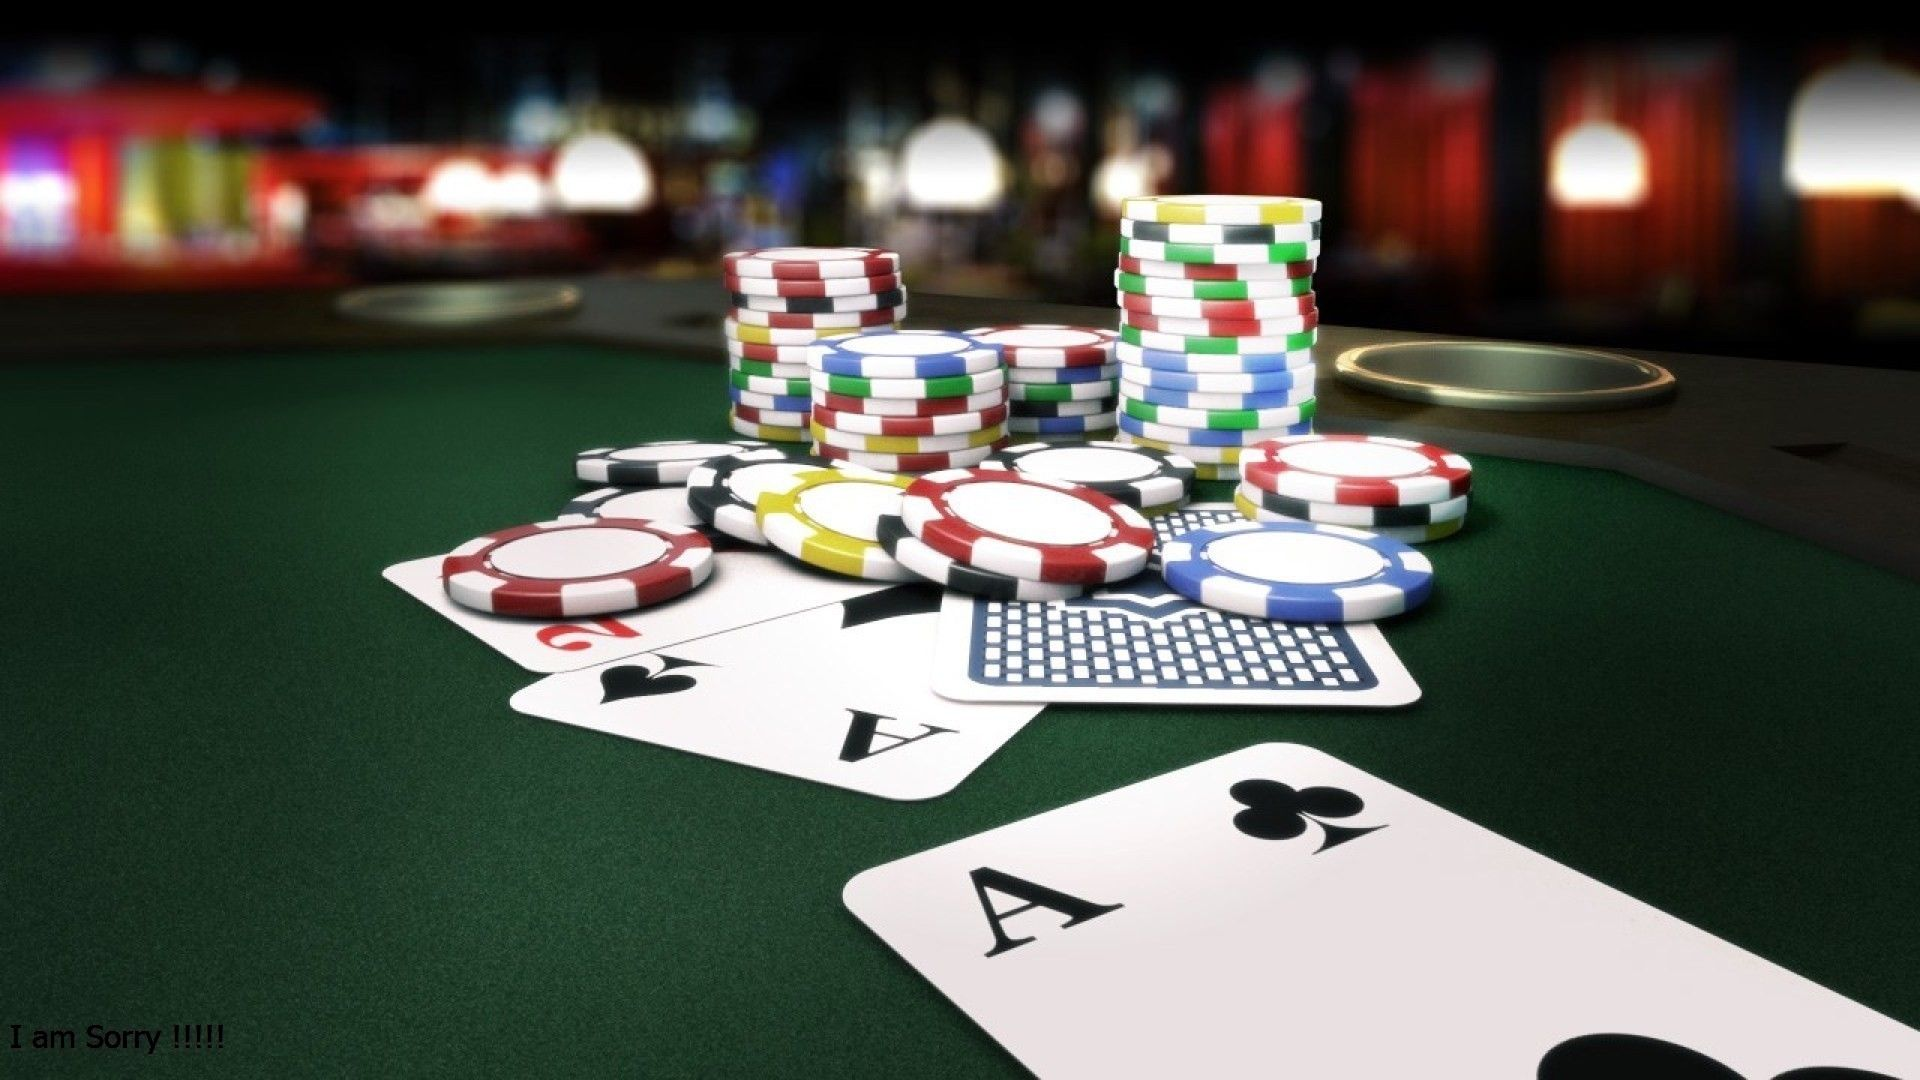 Getting to know the tricks to have more success in online poker